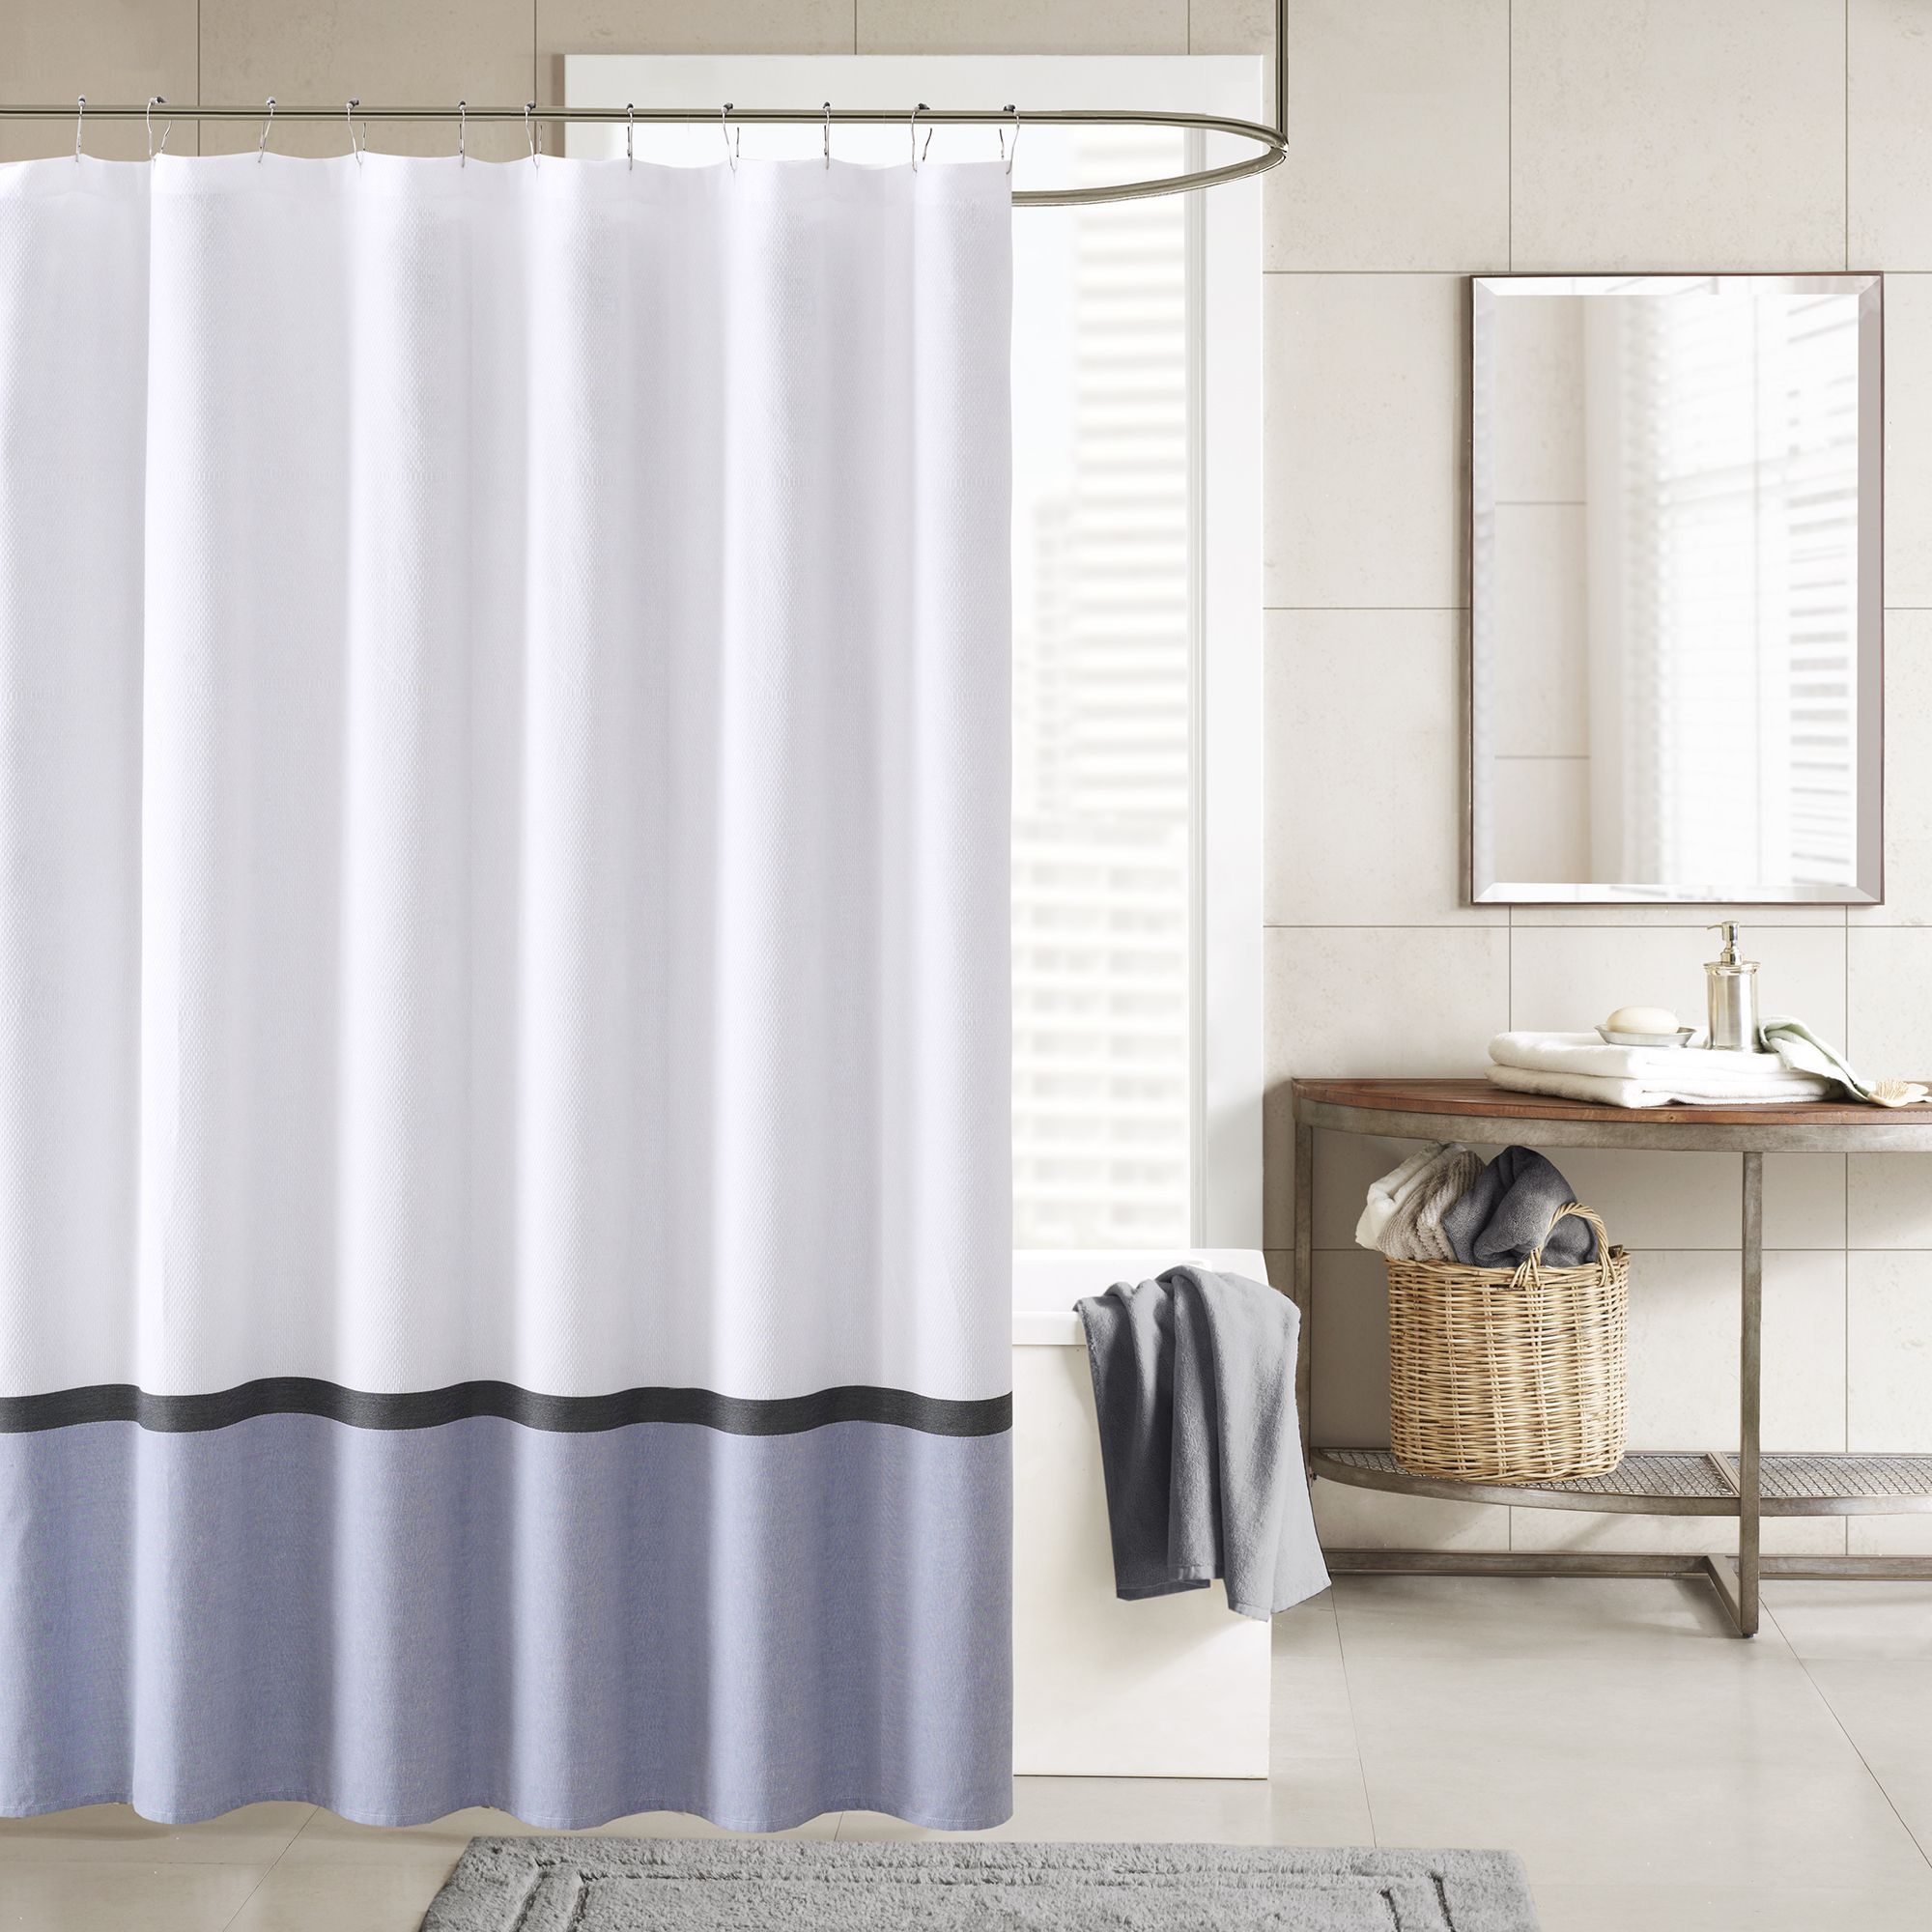 c and panels contemporary rugs hardware shower aqua drapes barrel curtains home white curtain navy restoration chambray tan privacy barrell absolute crate chevron relax with tips